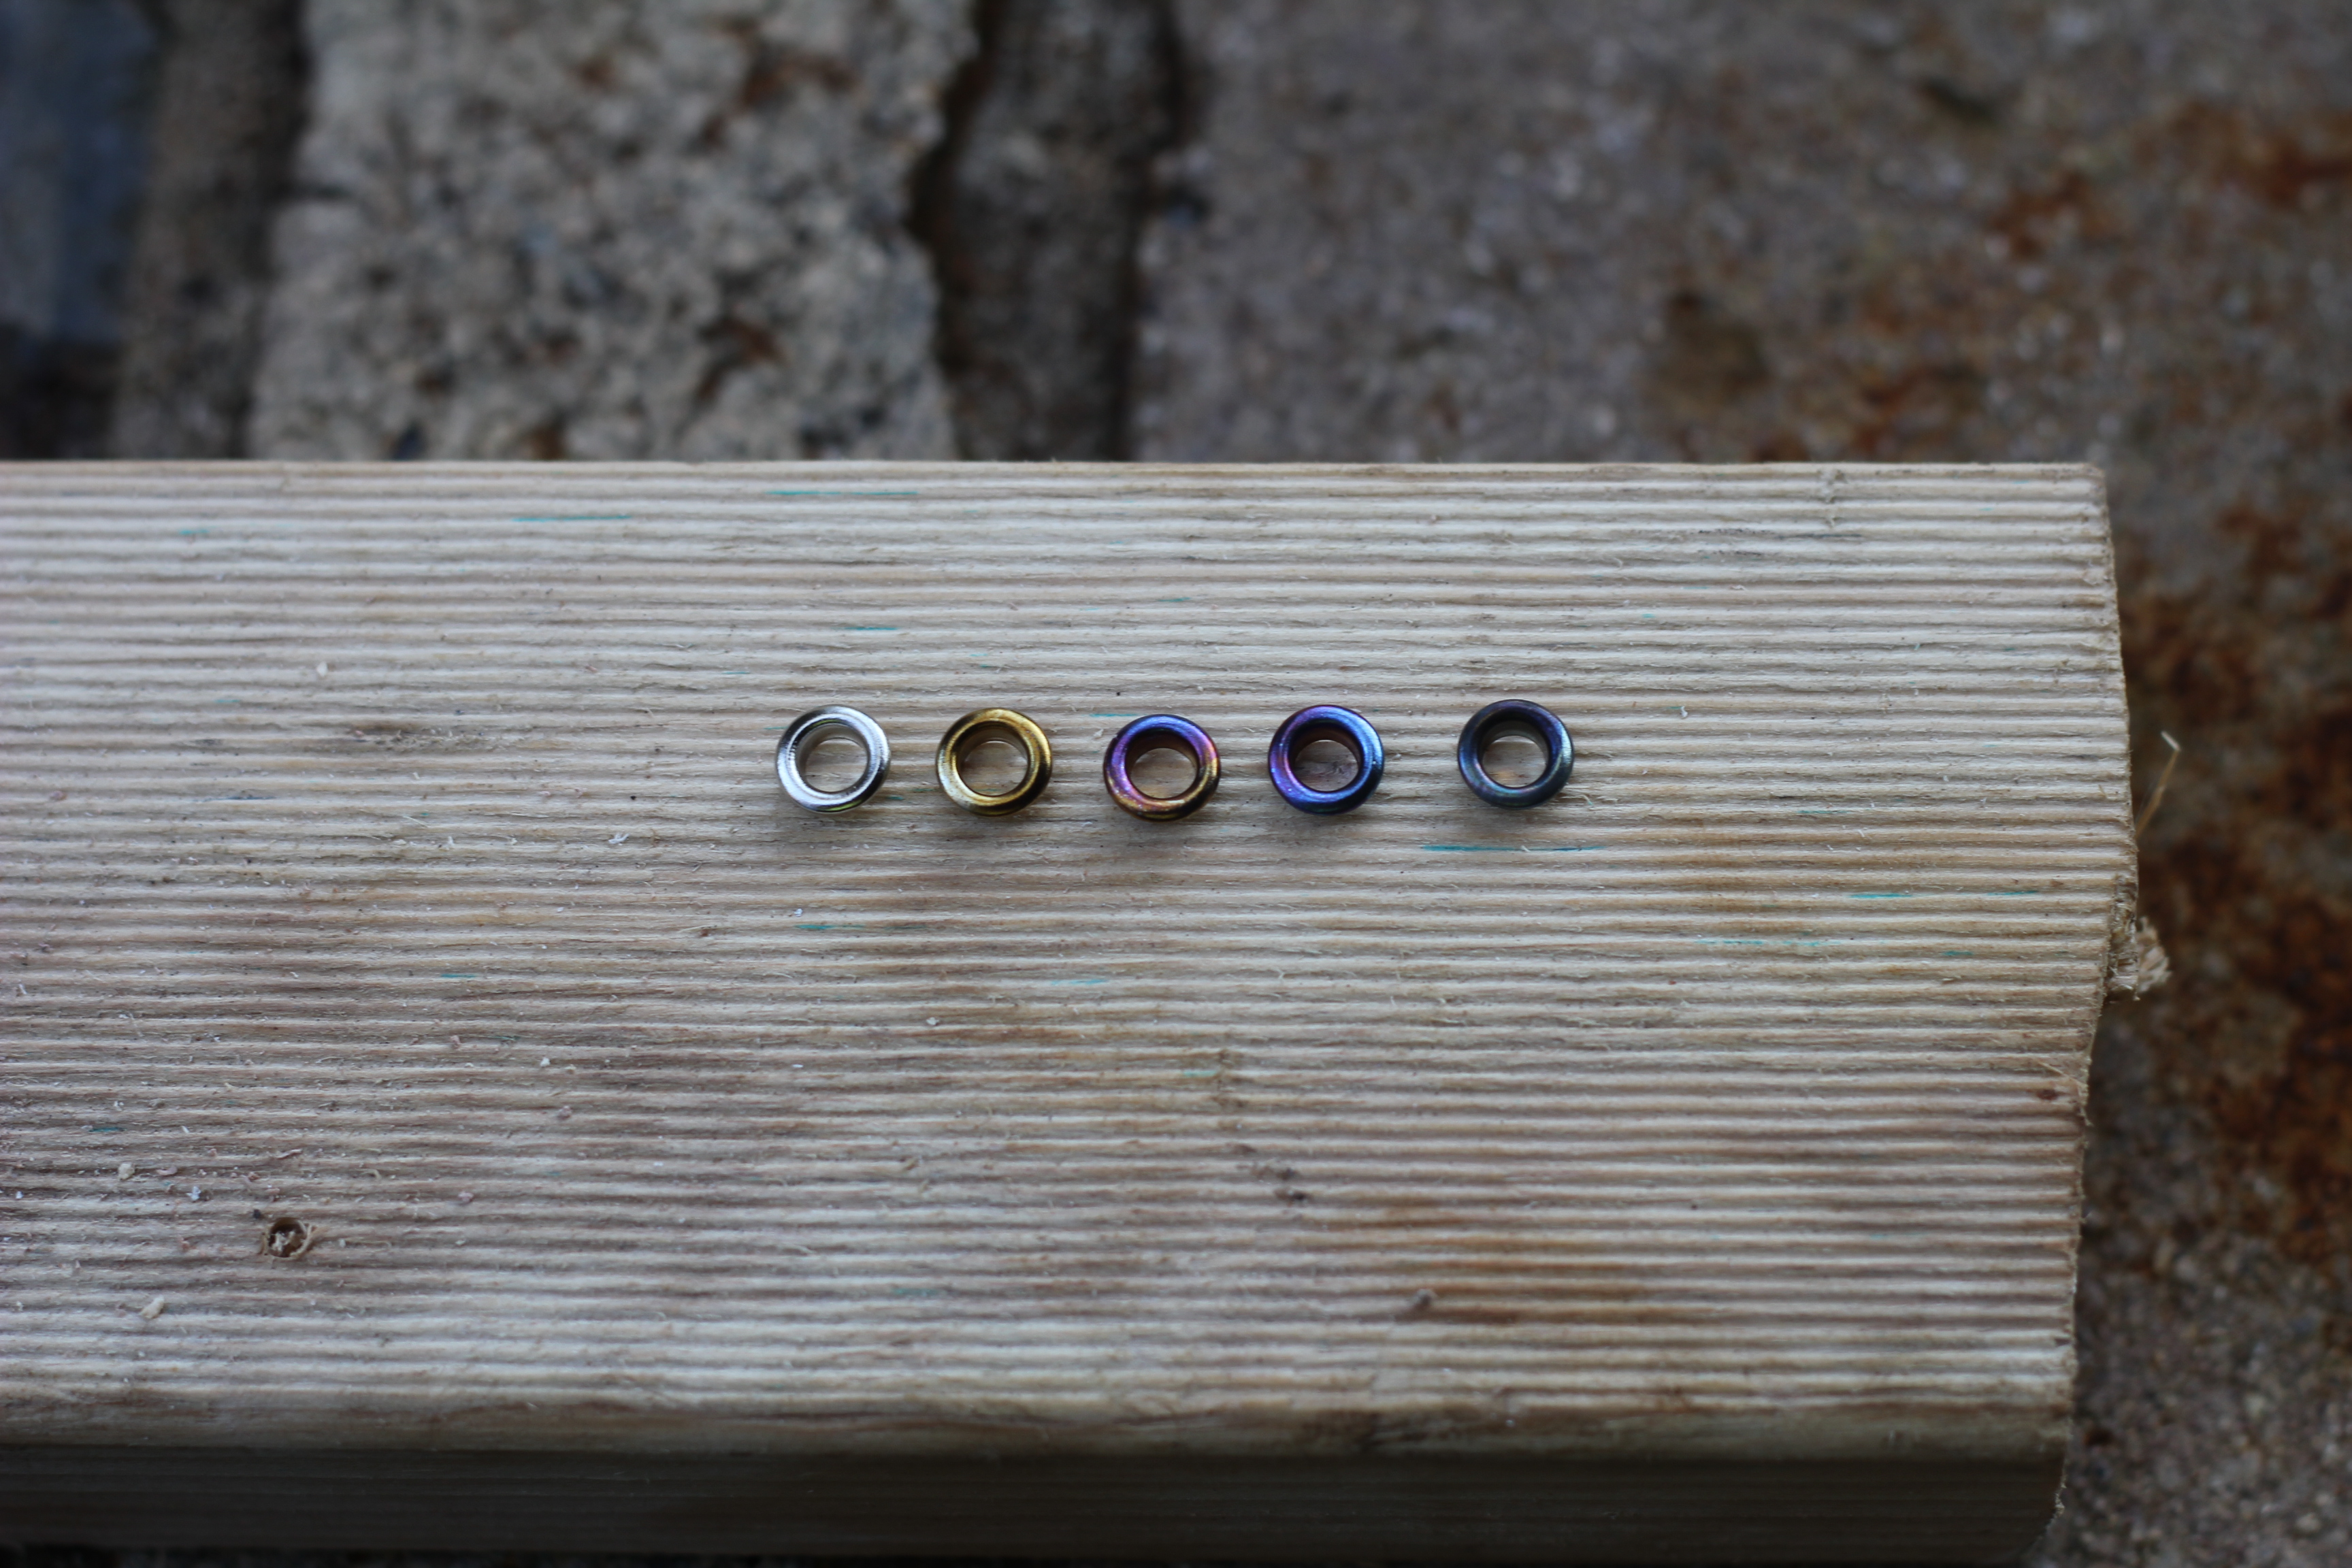 Picture of Preparing Eyelets/Grommets